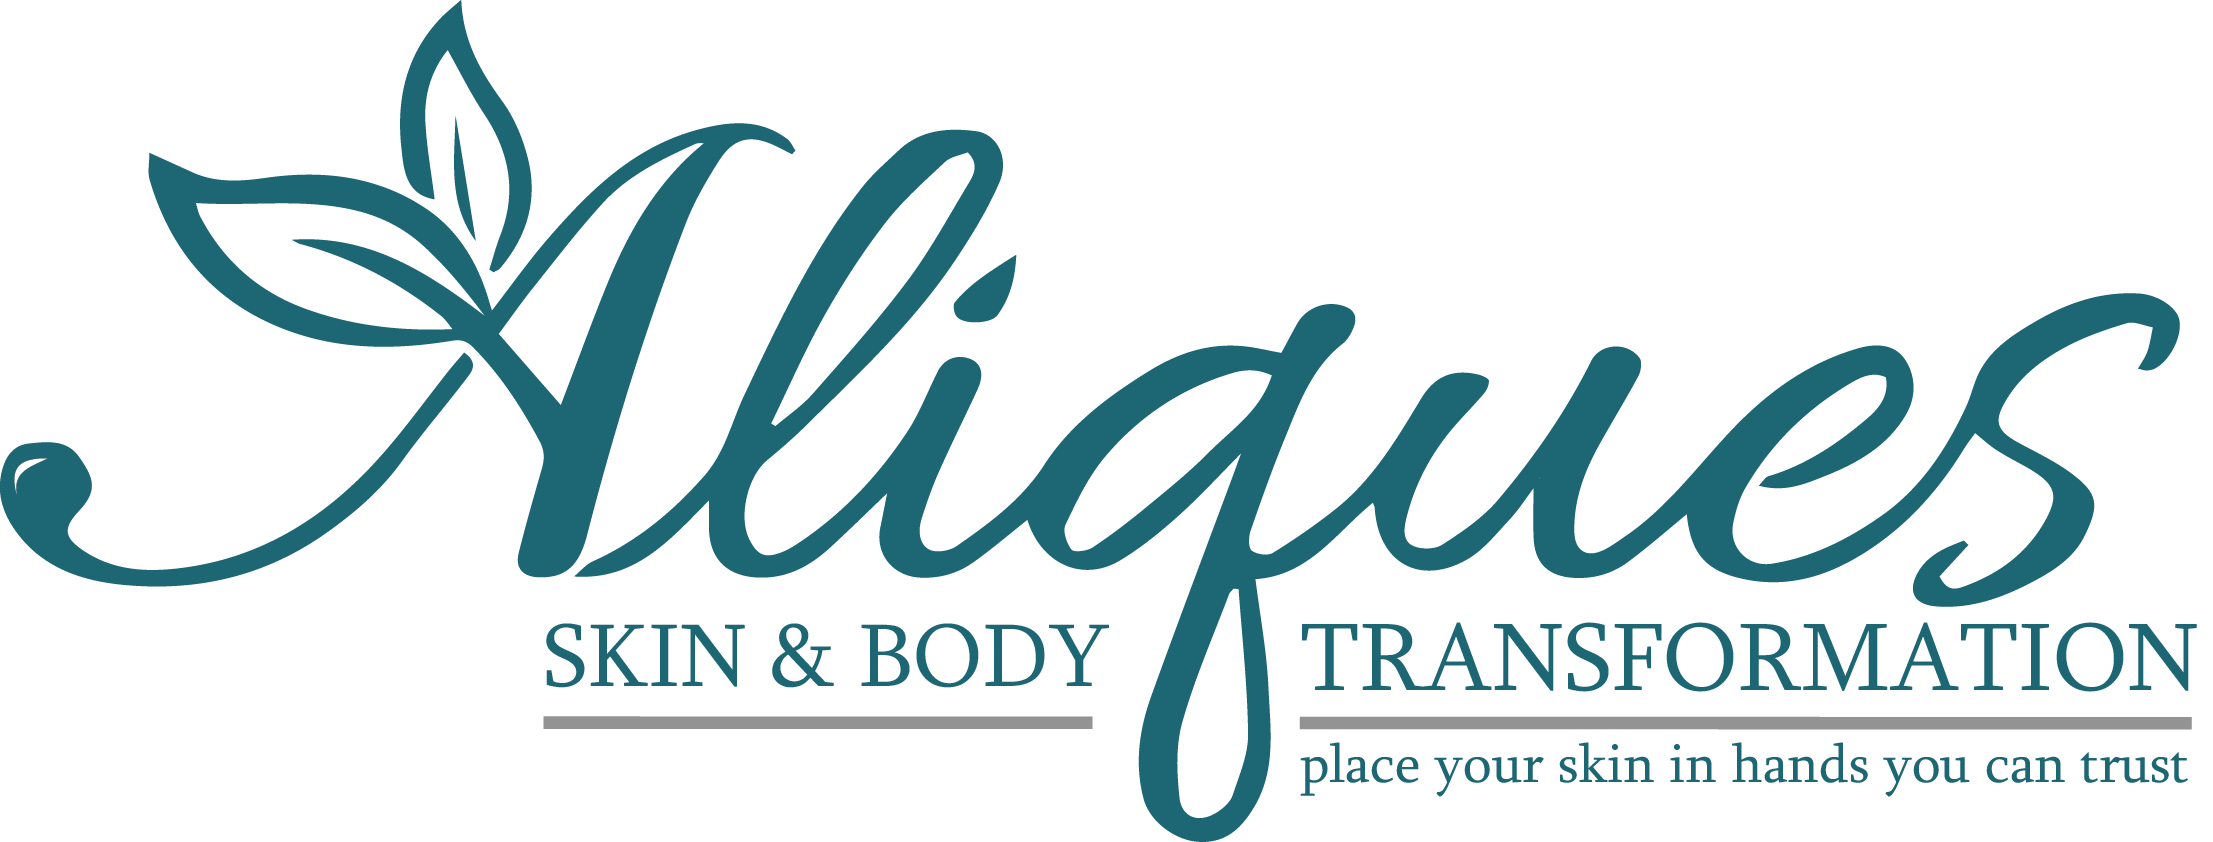 Aliques Skin & Body Transformation Logo